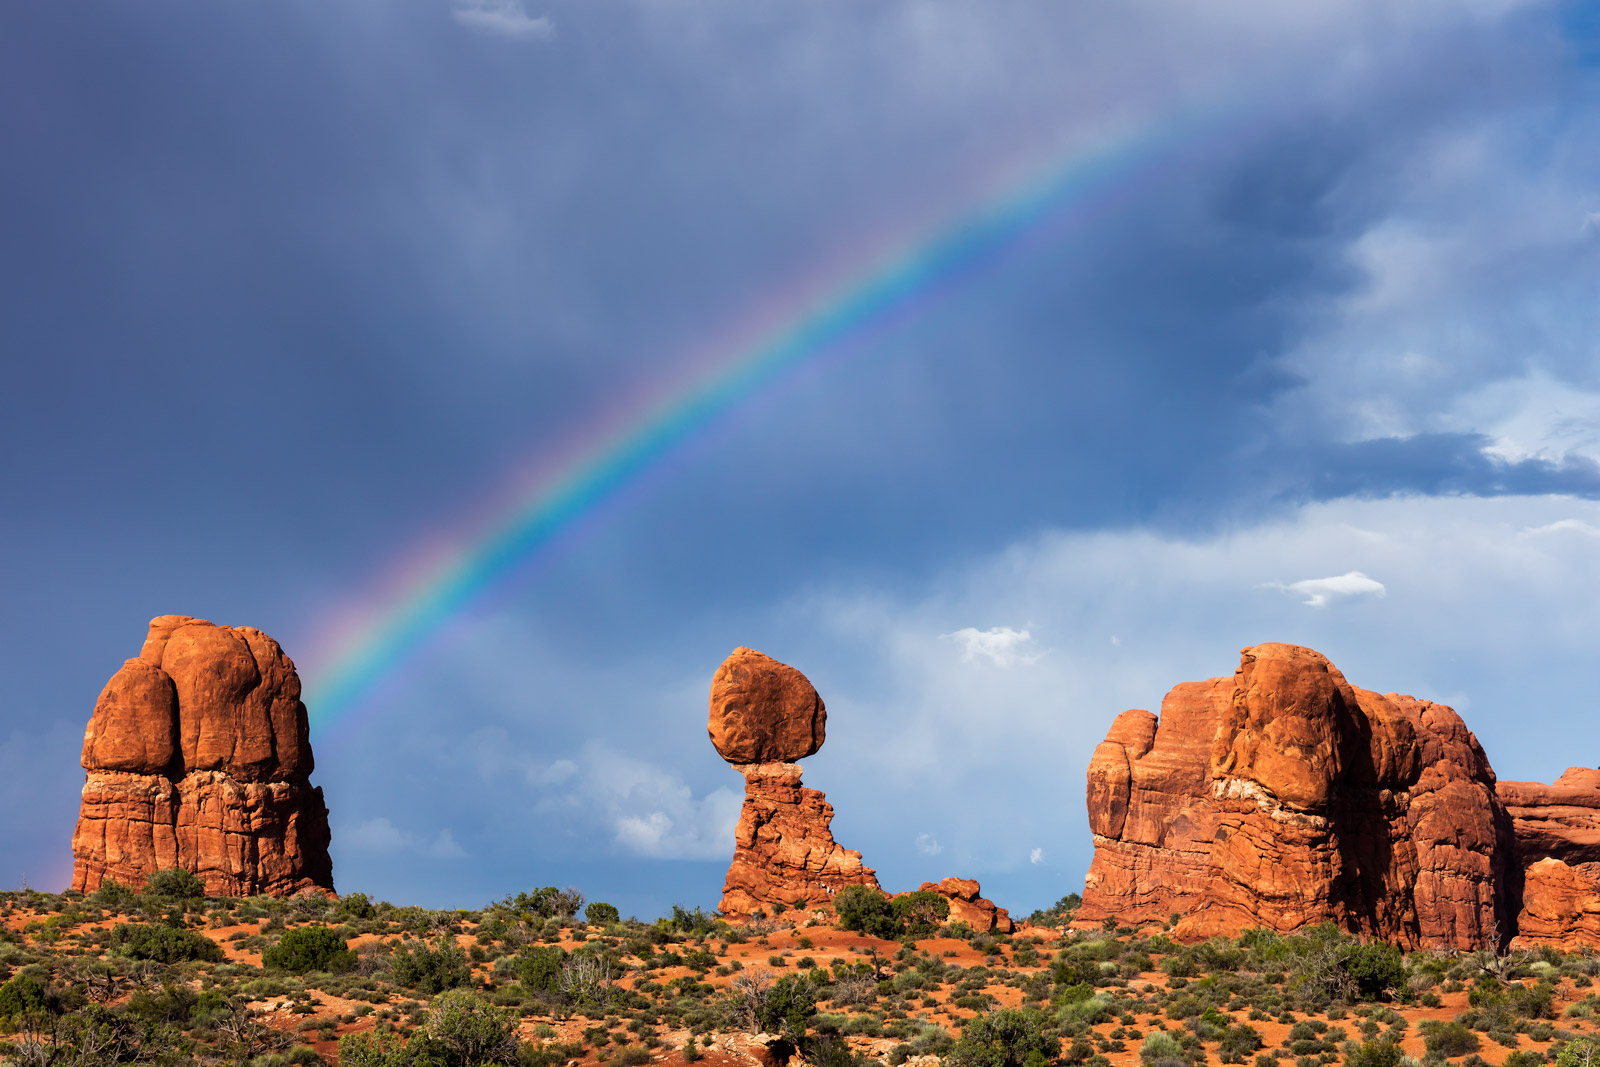 A Limited Edition Fine Art photograph of Balanced Rock in Arches National Park with a beautiful rainbow that appeared after a...